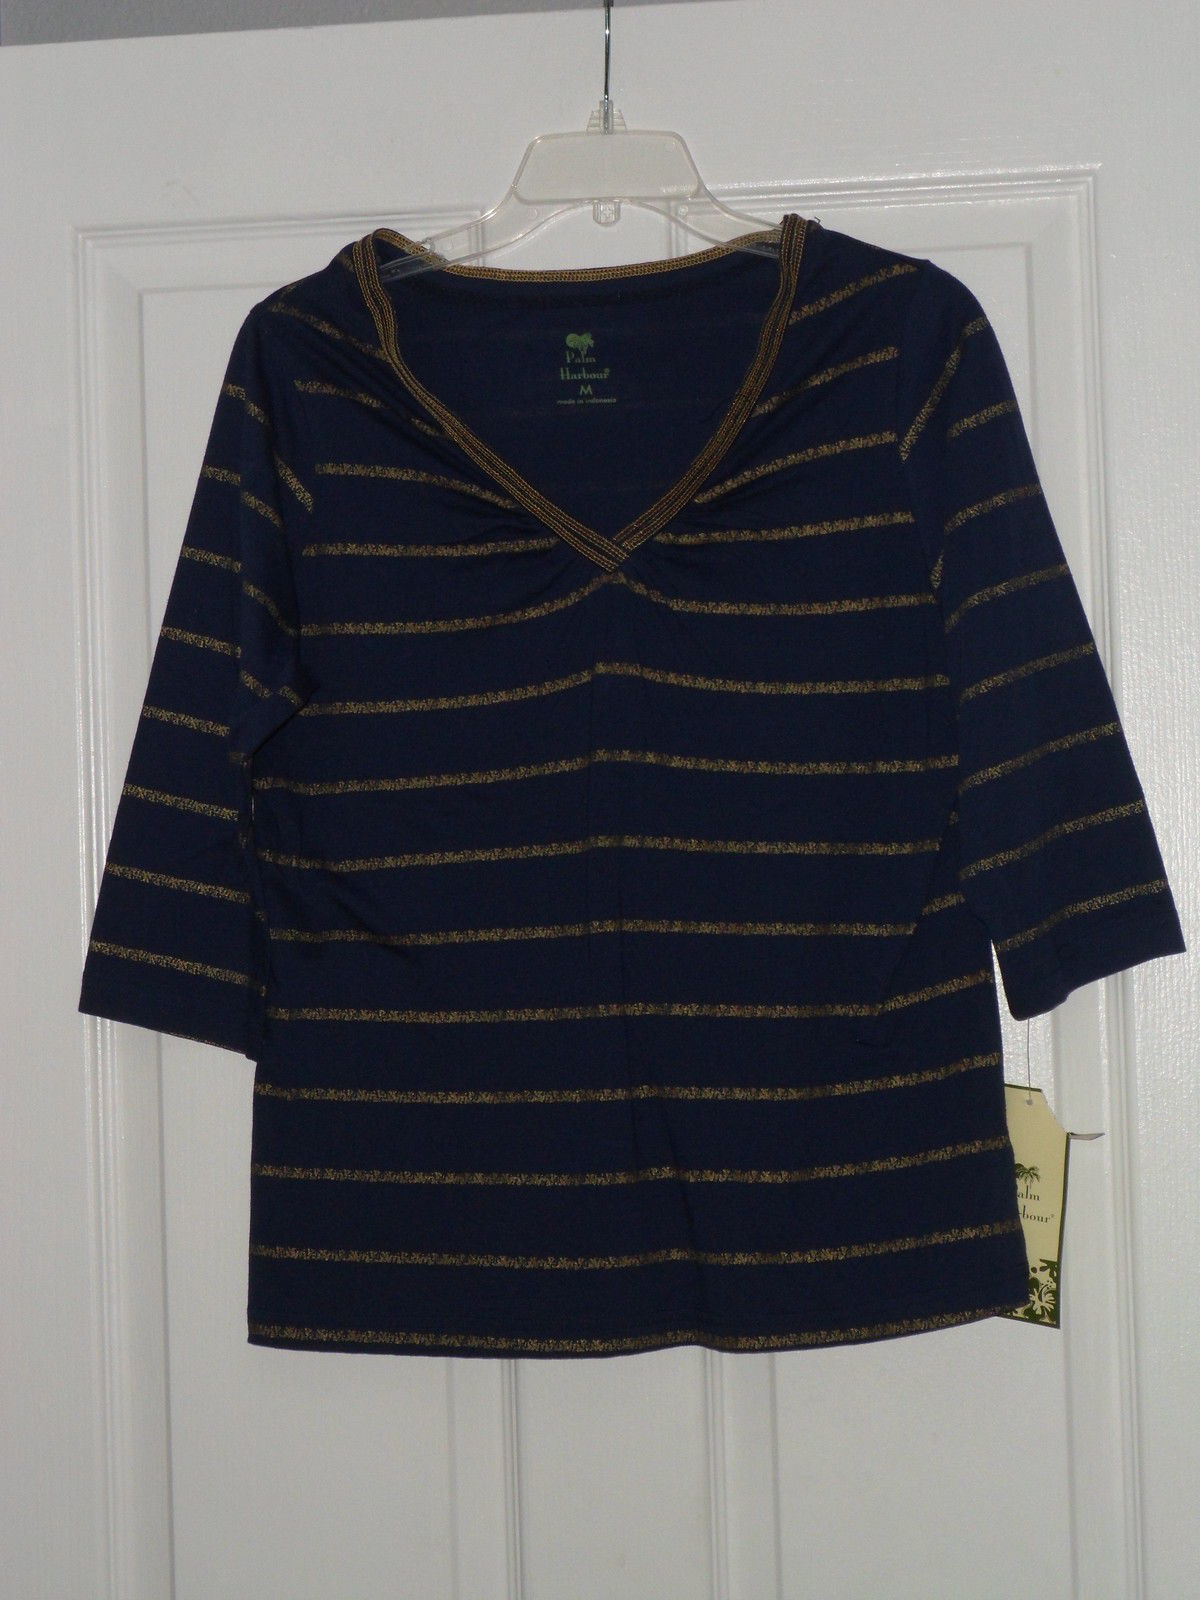 PALM HARBOUR KNIT SHIRT SIZE PS BLUE GOLD LIGHTWEIGHT NWT - $15.79